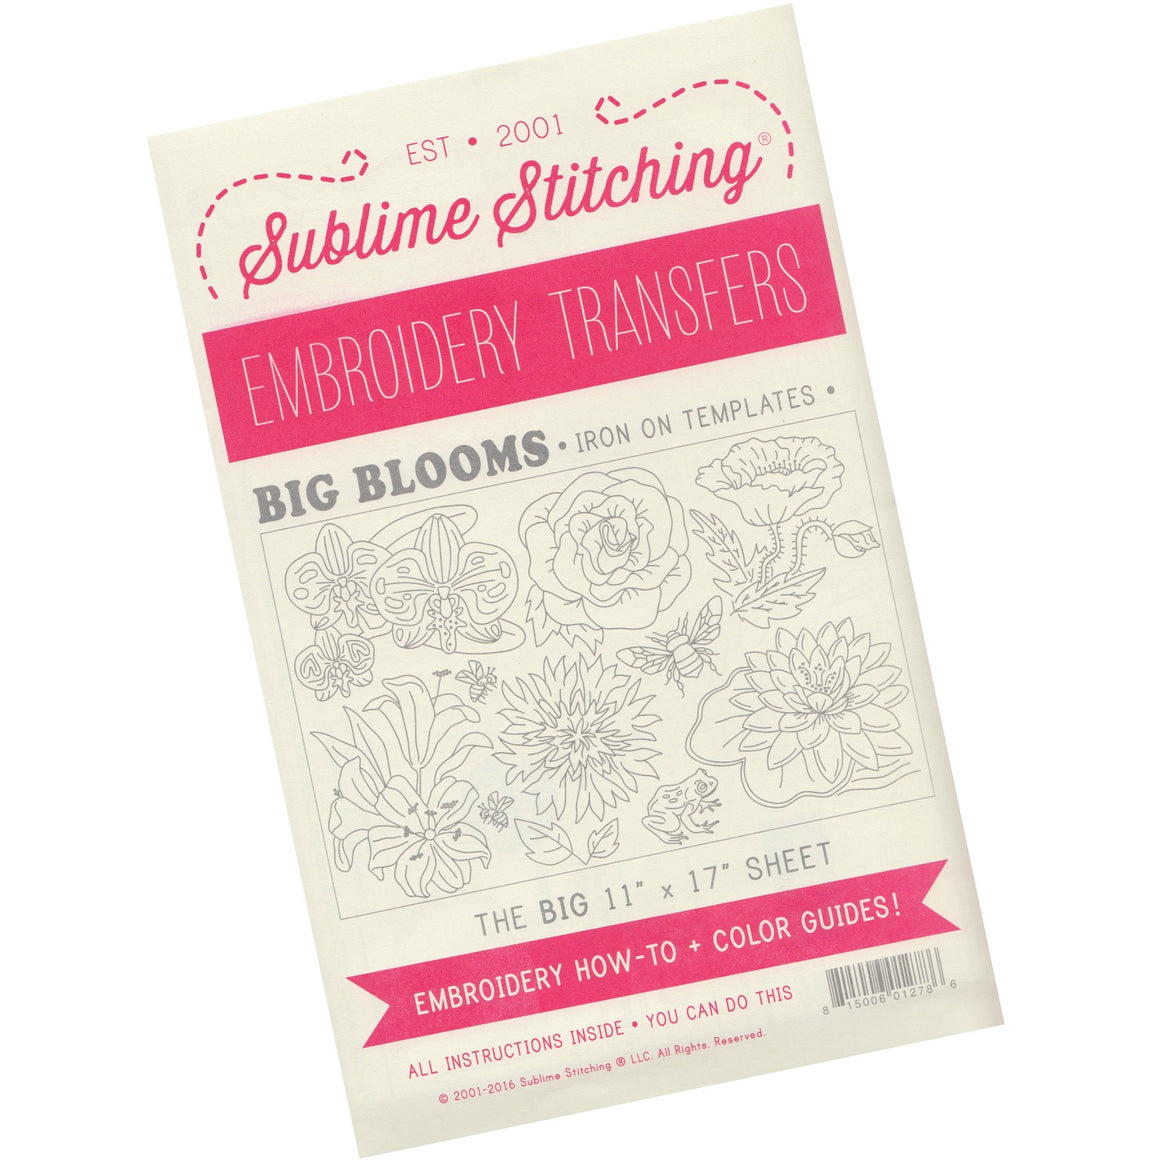 Sublime Stitching Embroidery Patterns - Big Blooms Patterns - Snuggly Monkey